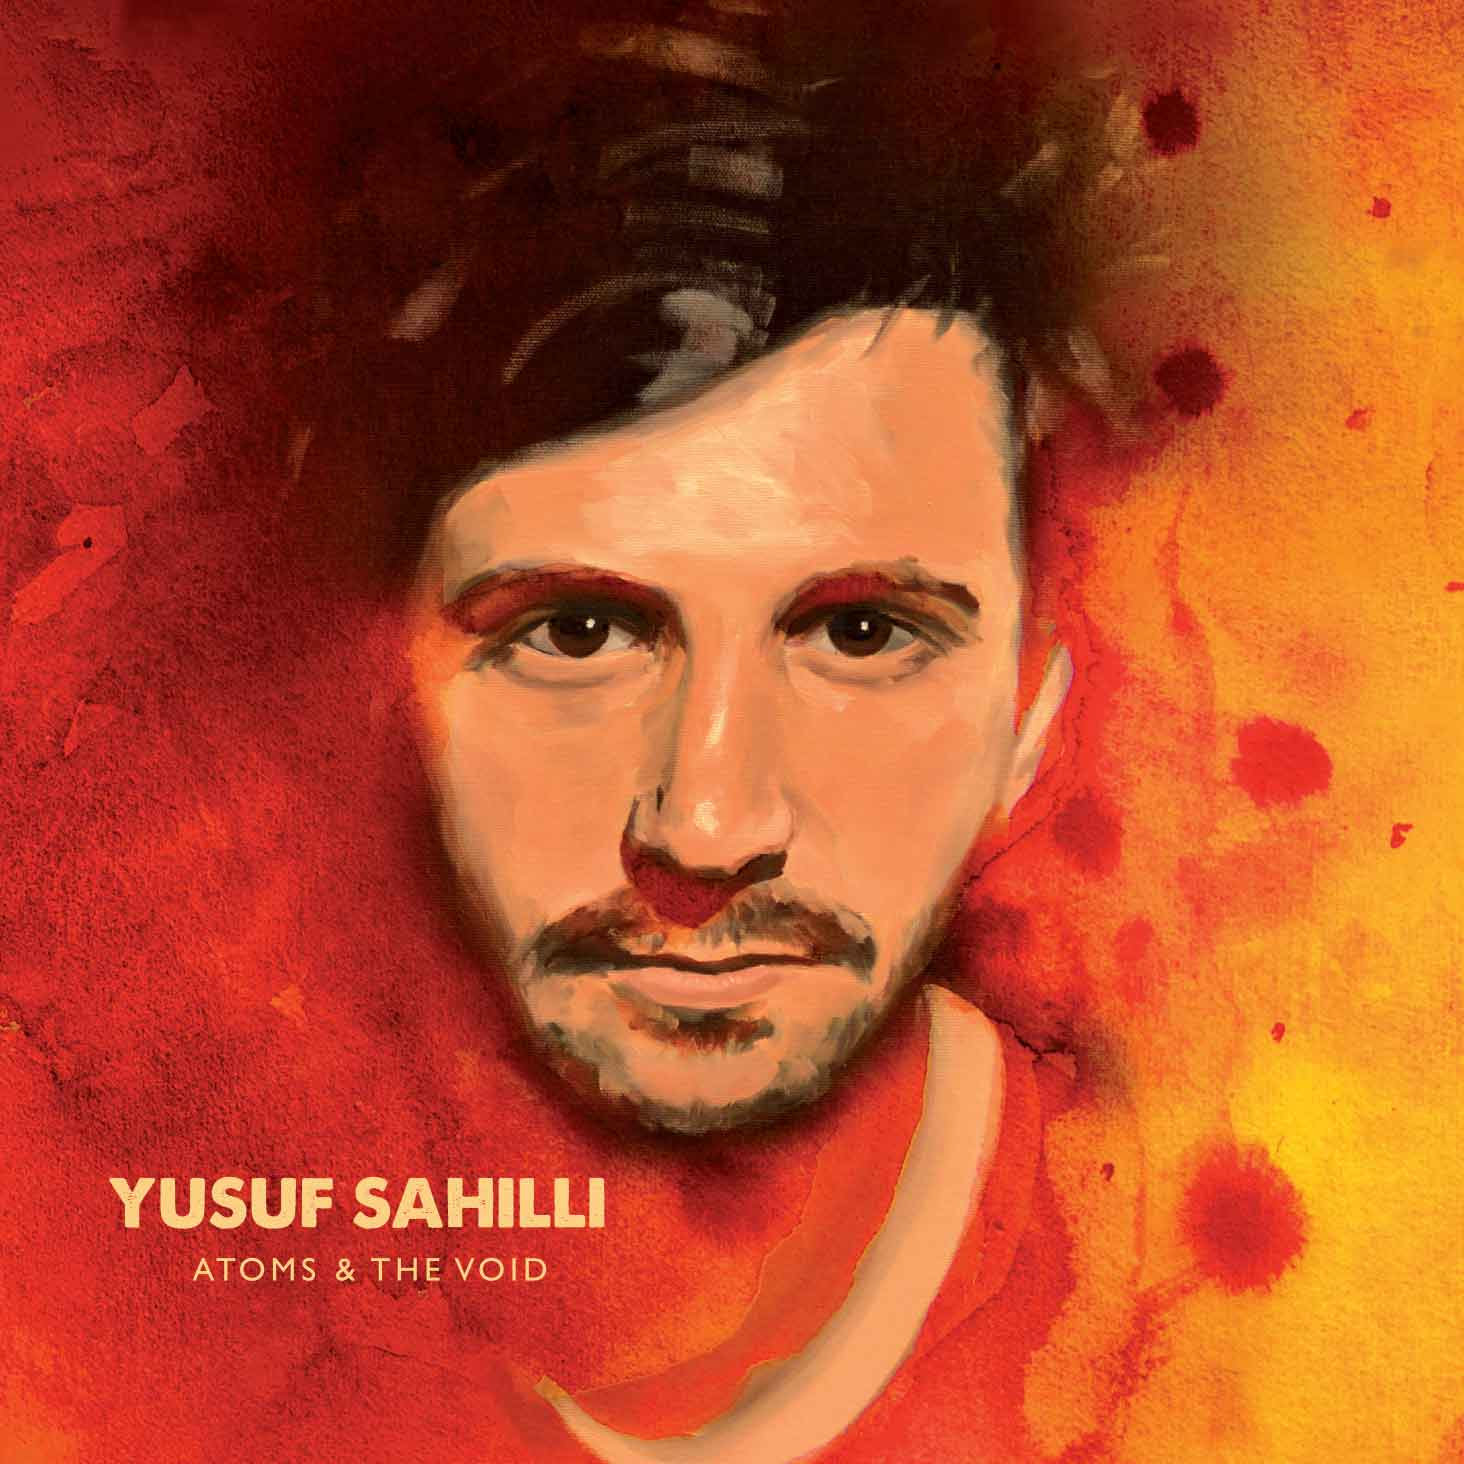 cd-yusuf-sahilli-atoms-and-the-void